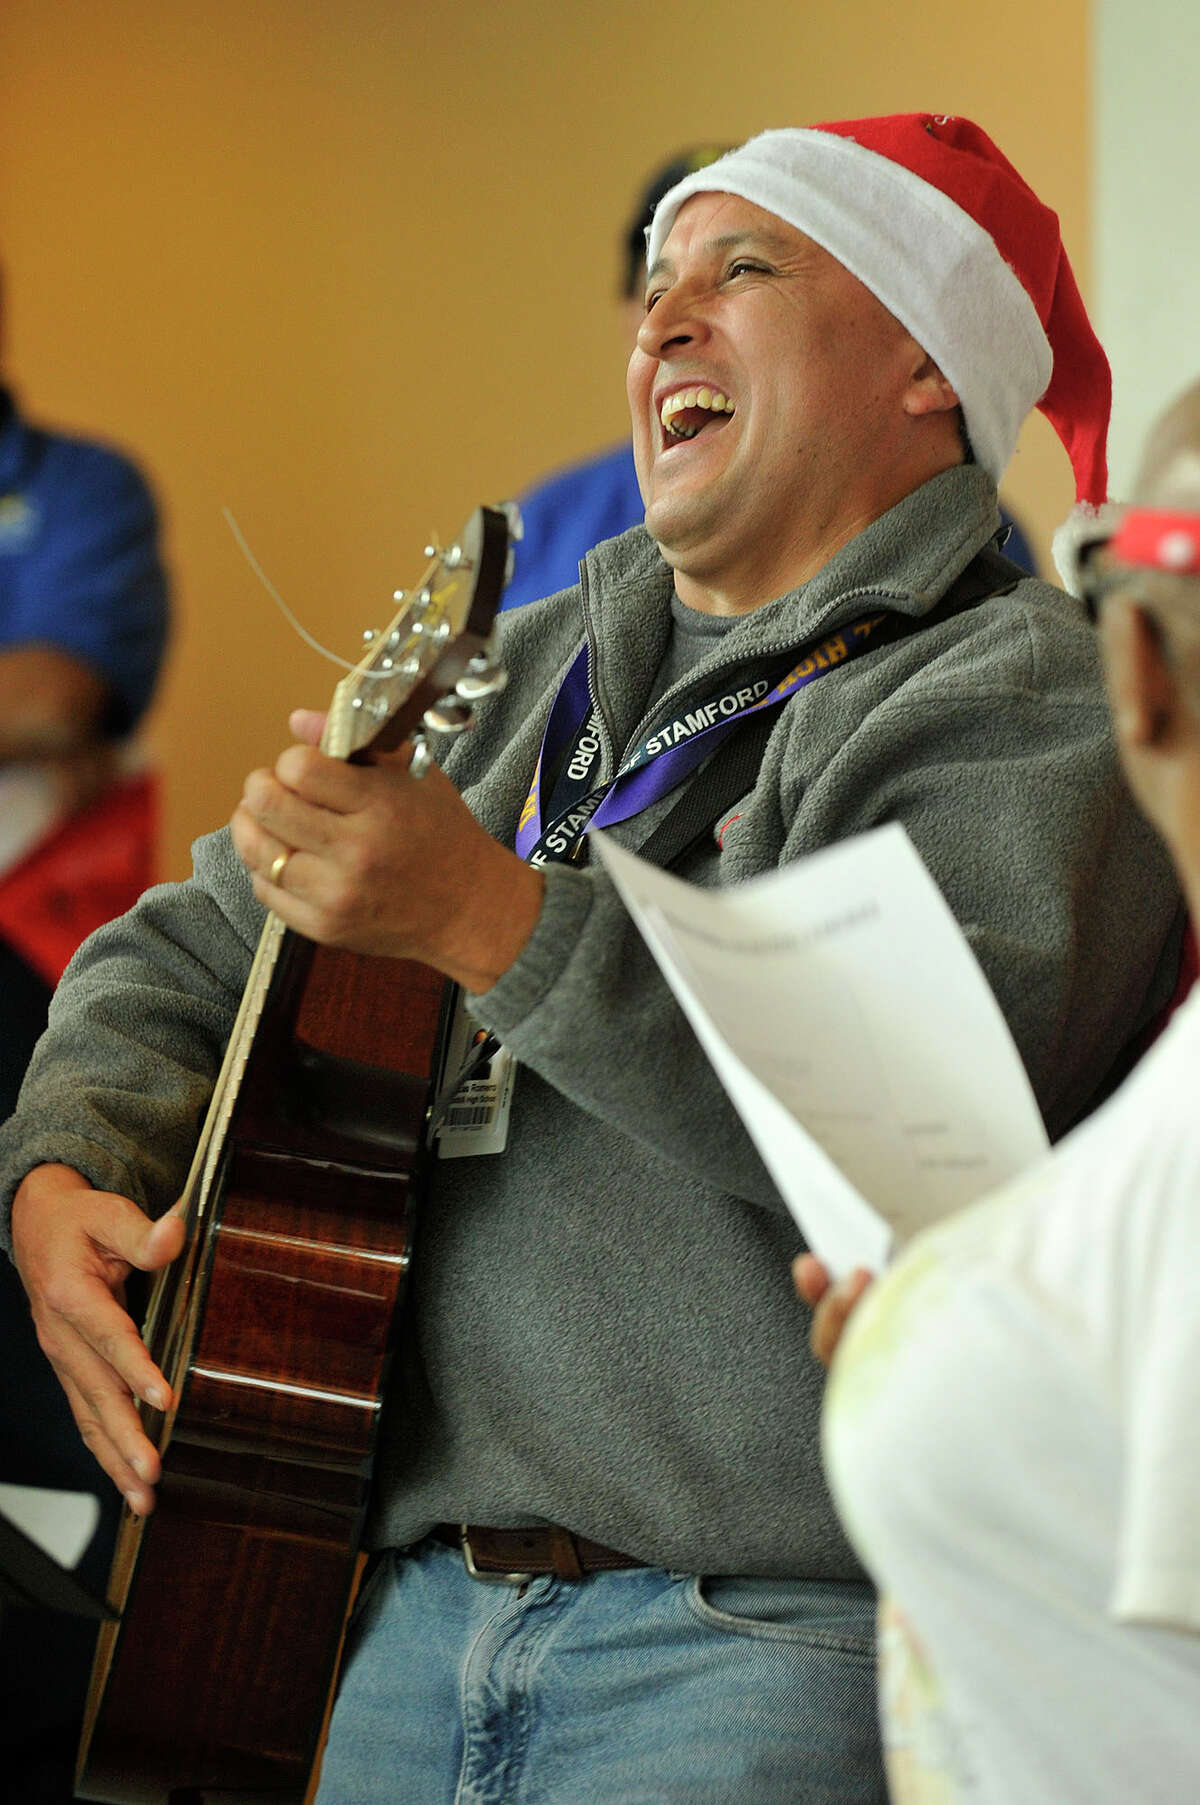 Lucas Romero leads the carolers by playing a guitar during the annual tree lighting ceremony at the Stamford Government Center in Stamford, Conn., on Thursday, Dec. 11, 2014.